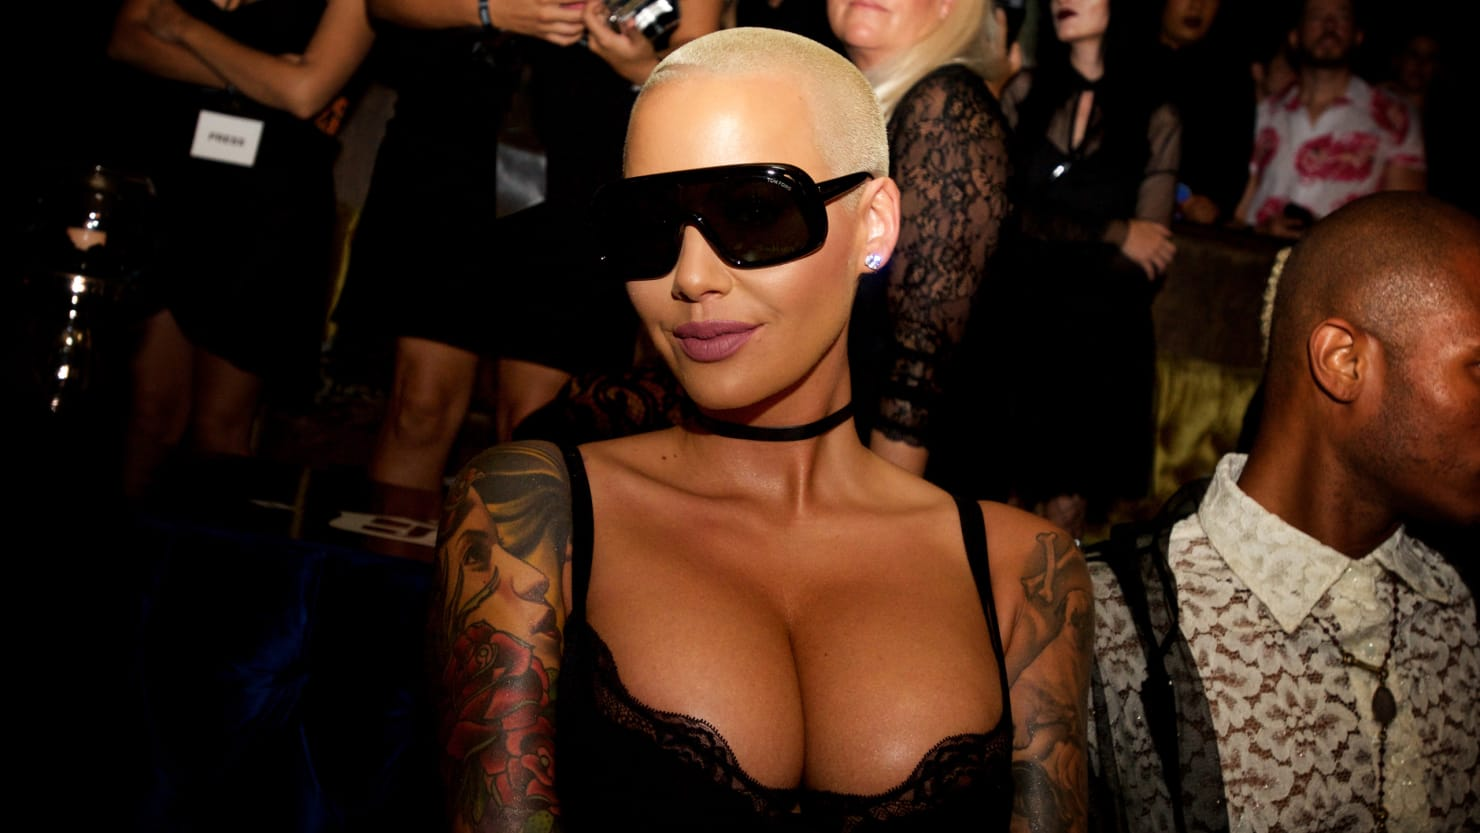 Amber rose nude hell yeah you need to see this pics